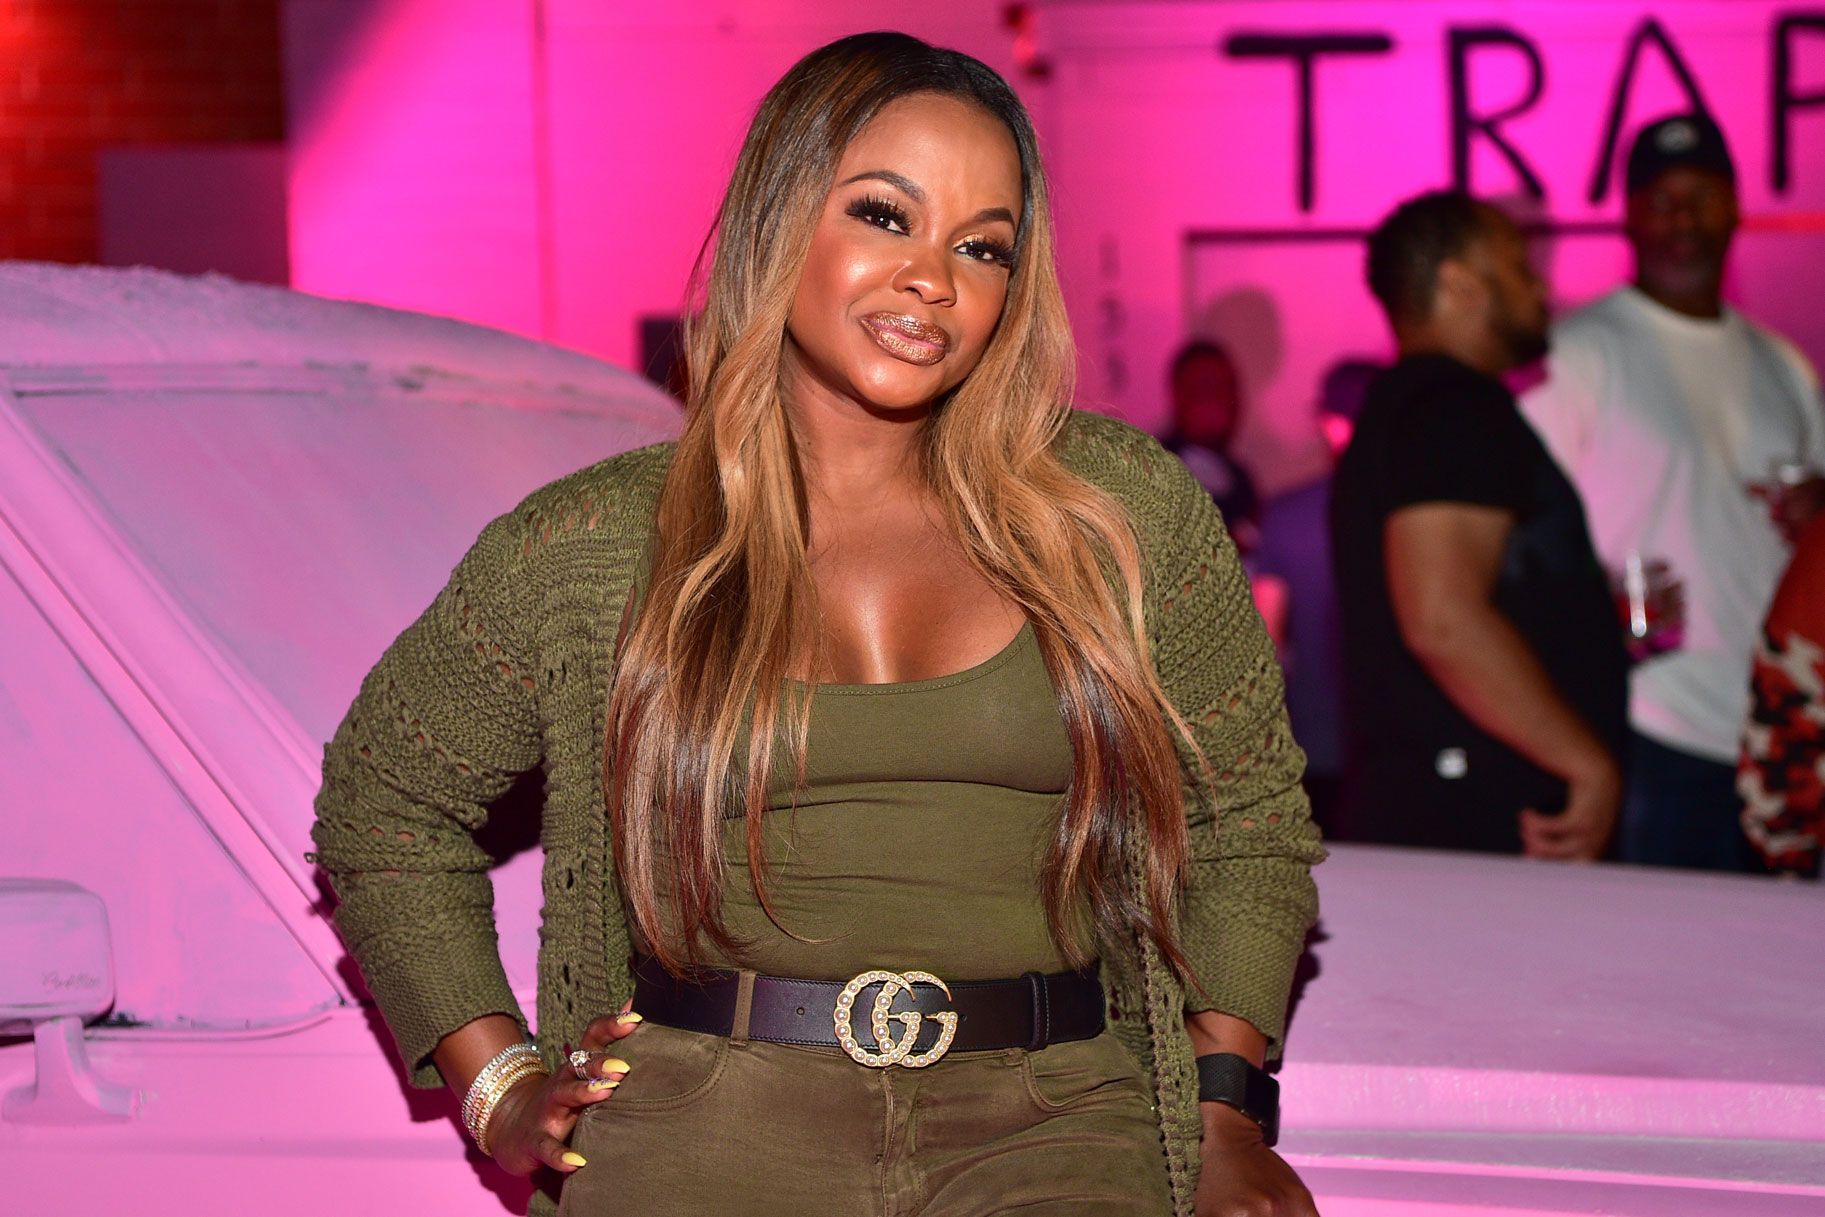 phaedra-parks-confirms-she-is-in-talks-to-rejoin-rhoa